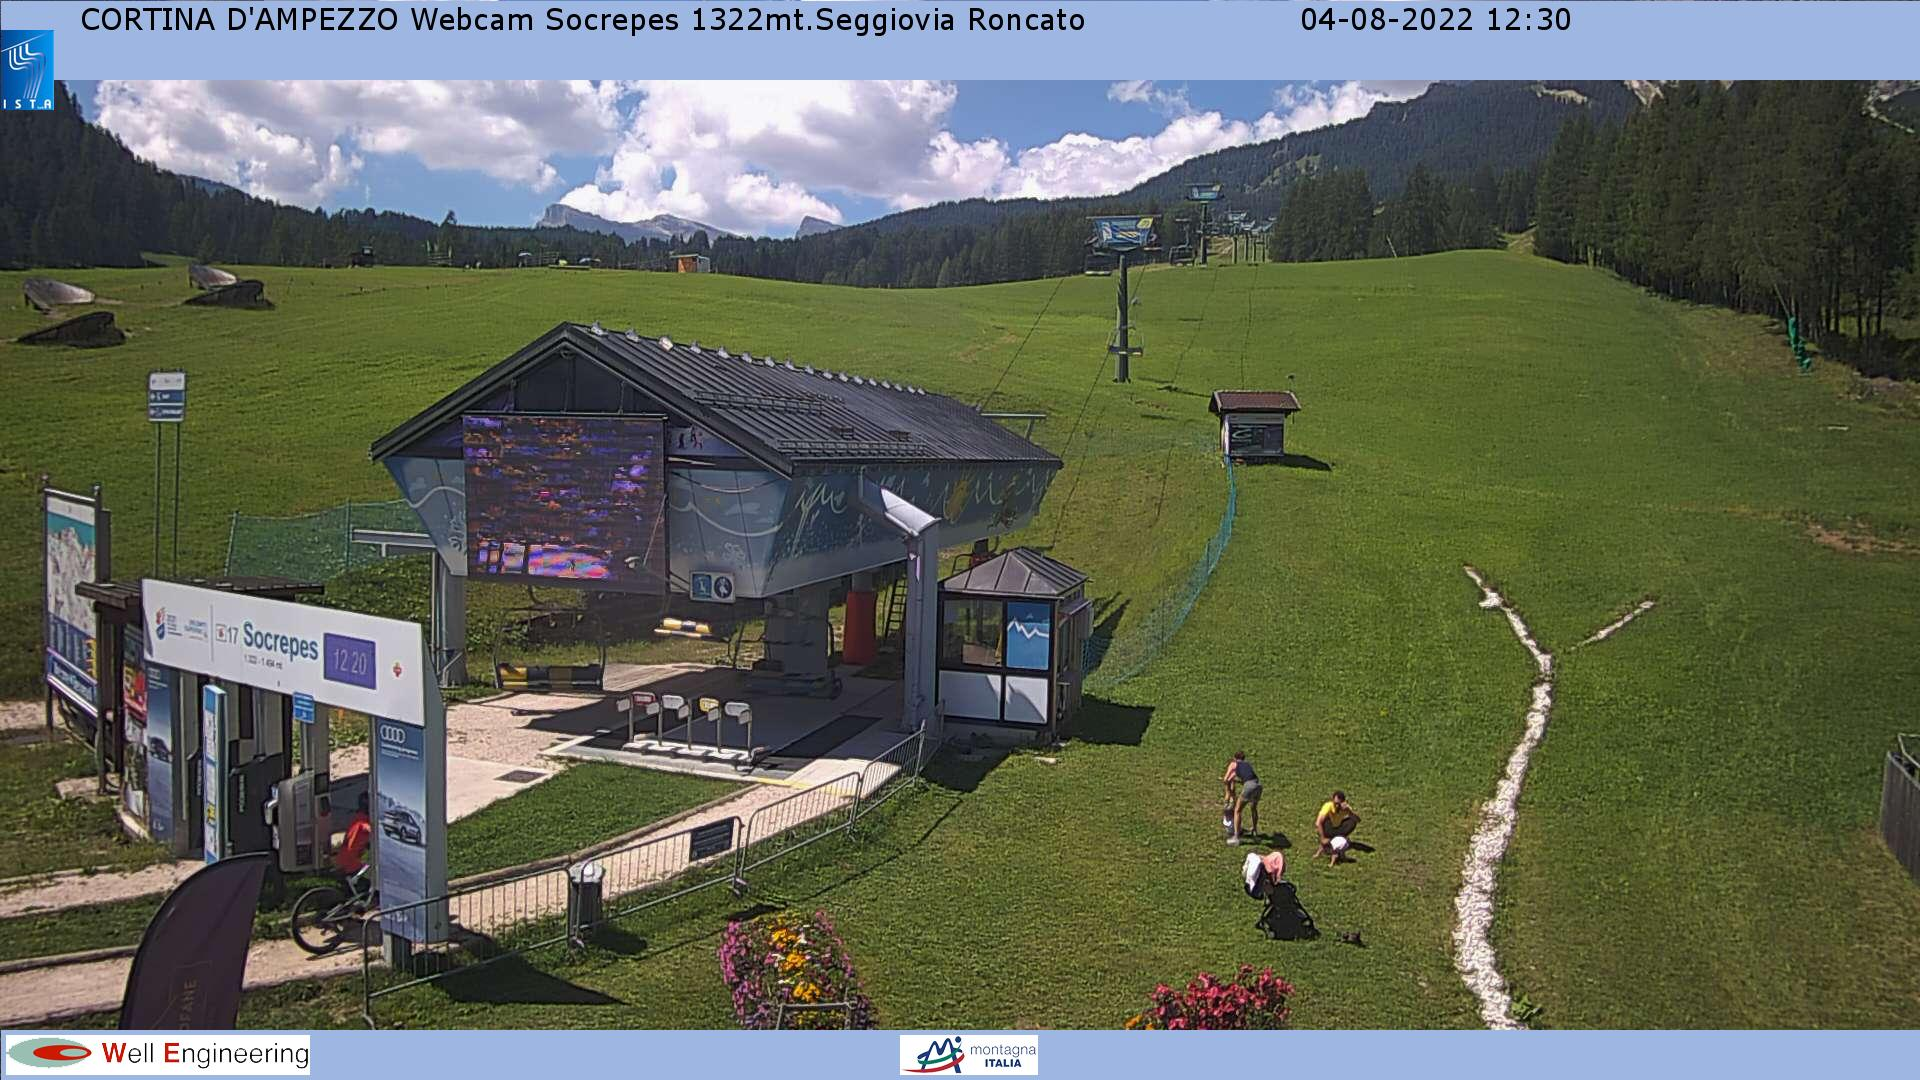 Webcam at Socrepes (1322mt.) - Roncato Chair Lift